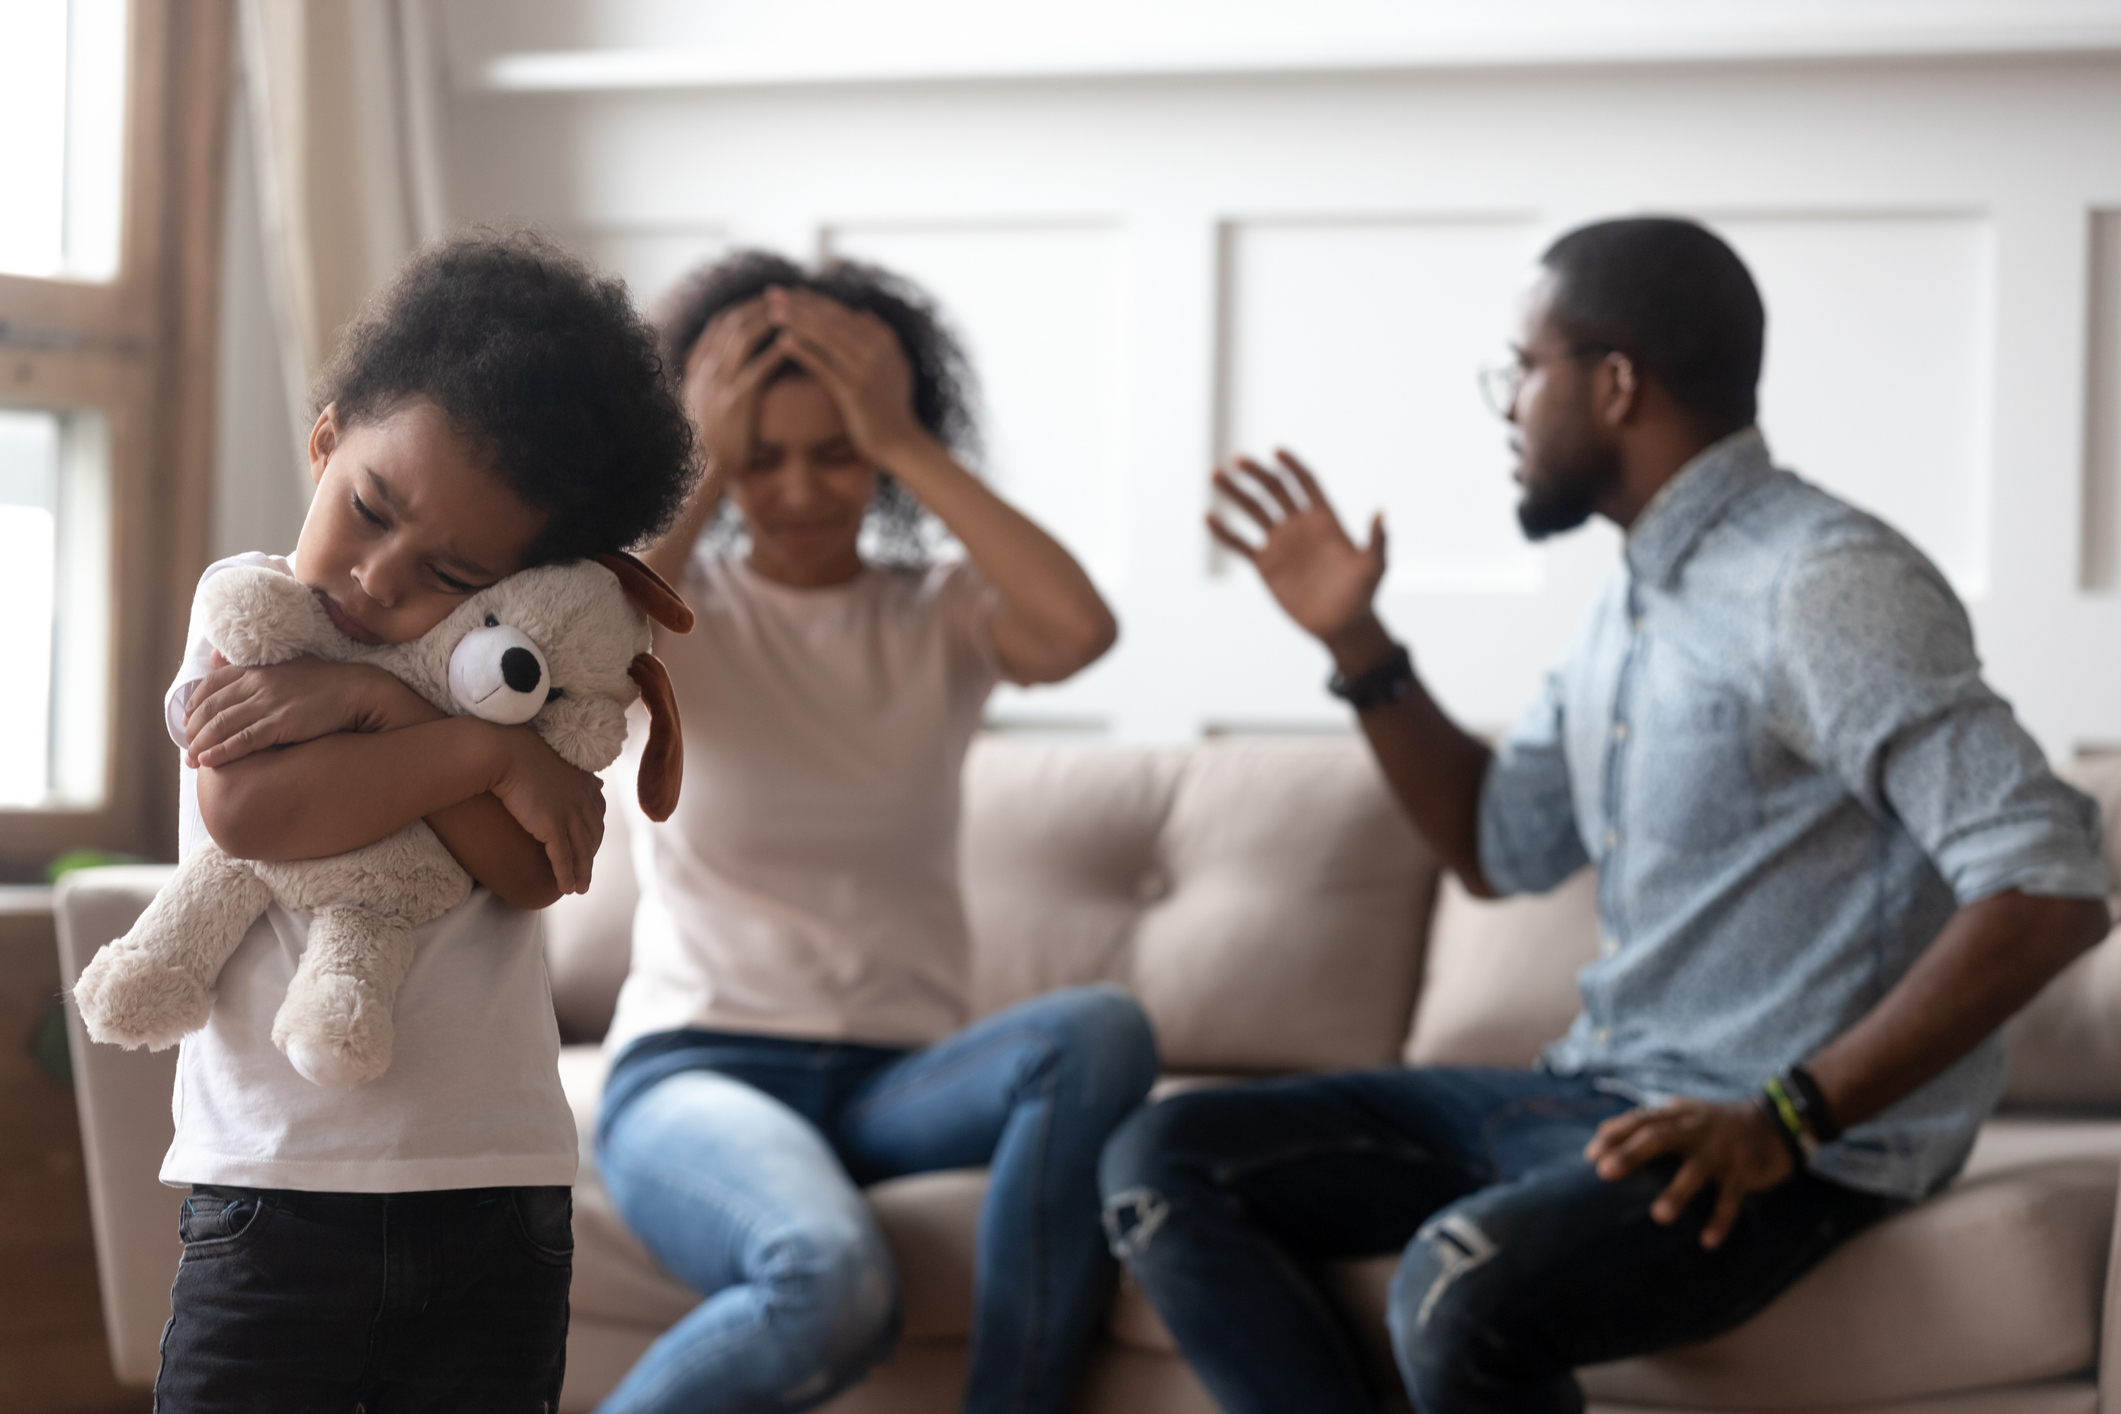 Son holding teddy bear while her parents argue